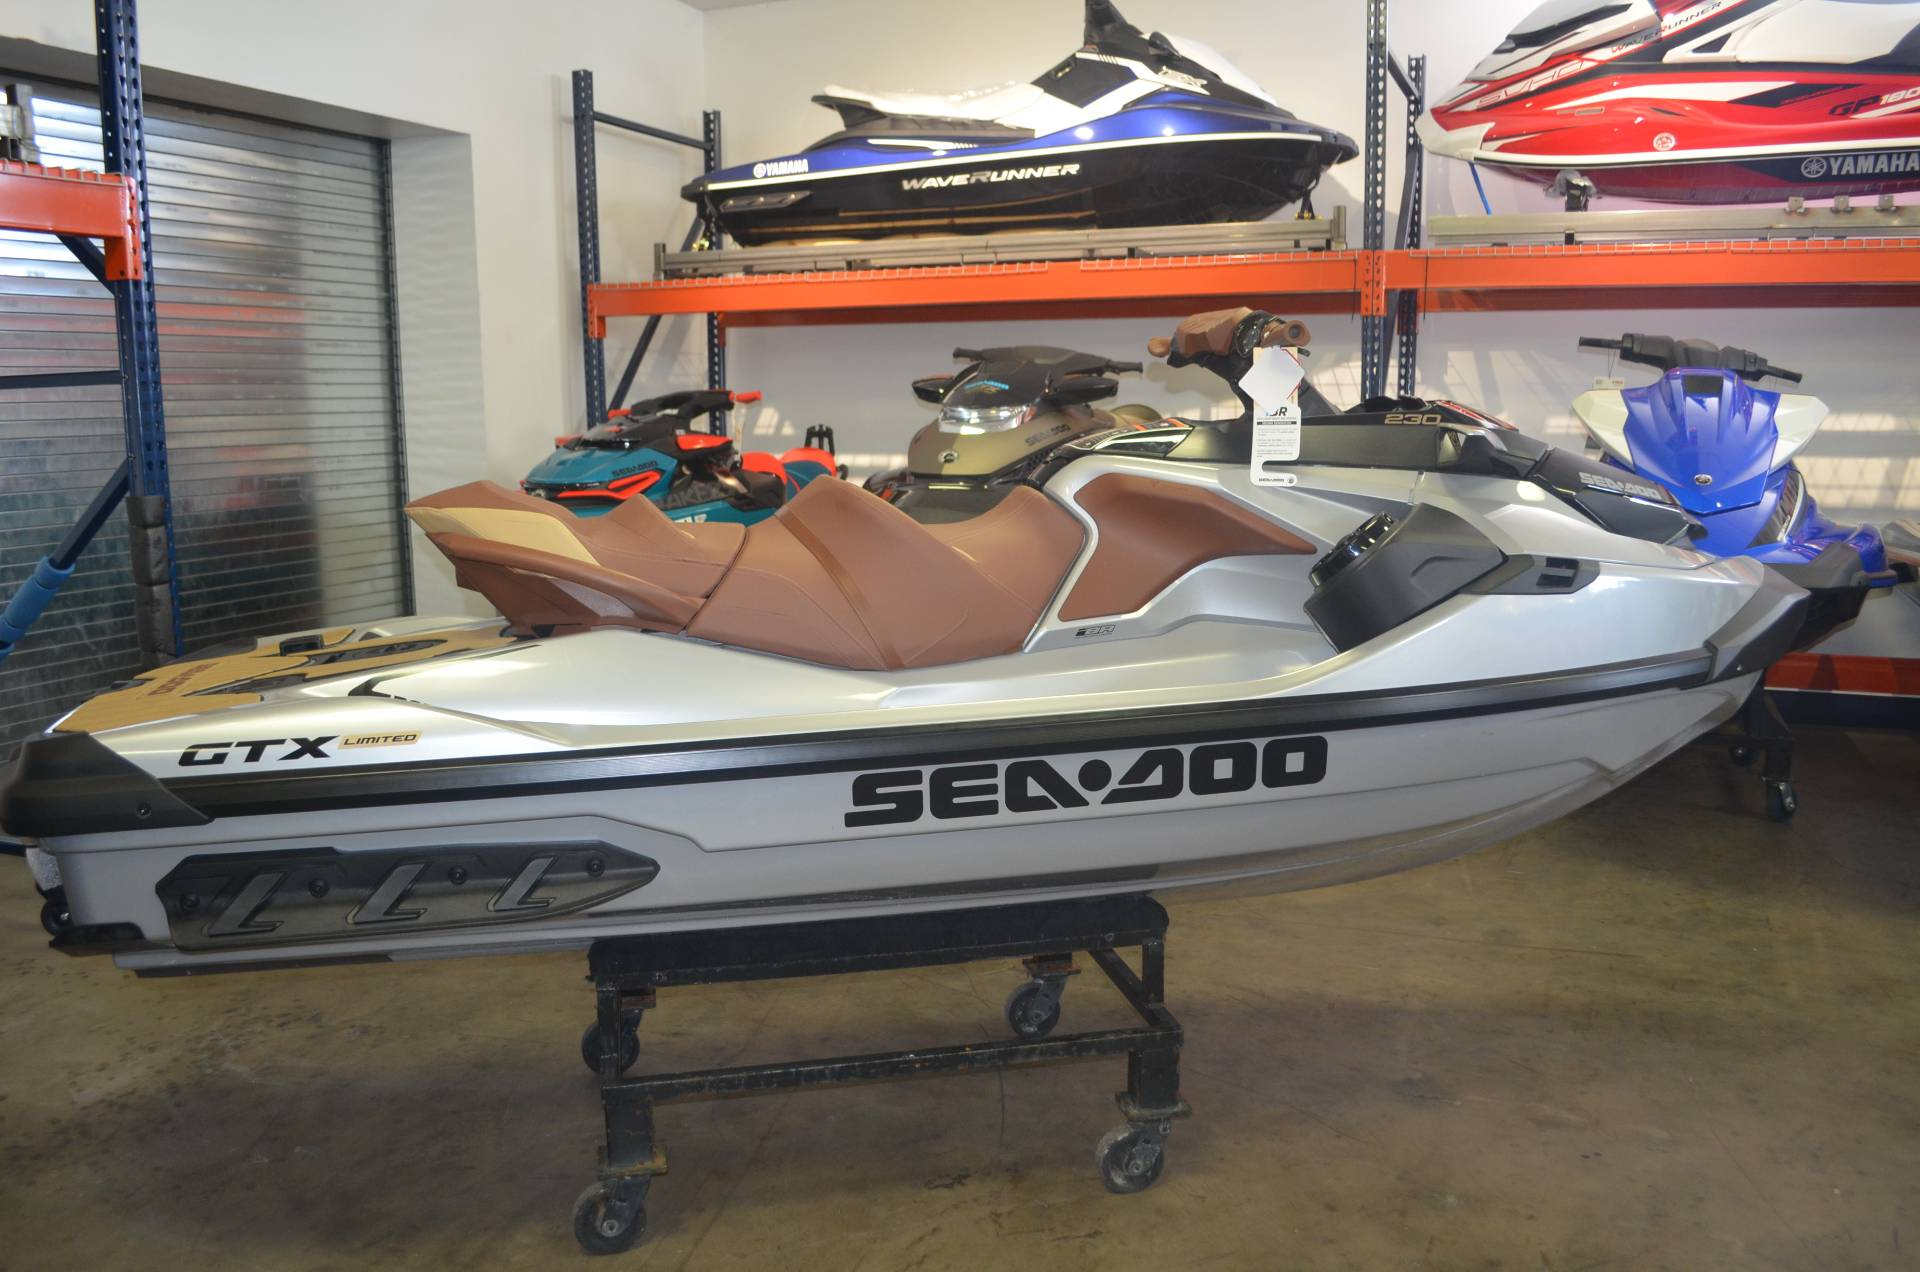 Personal Watercraft Dealer Miami Fl >> 2018 Sea-Doo GTX Limited 230 Incl. Sound System Watercraft Miami Florida